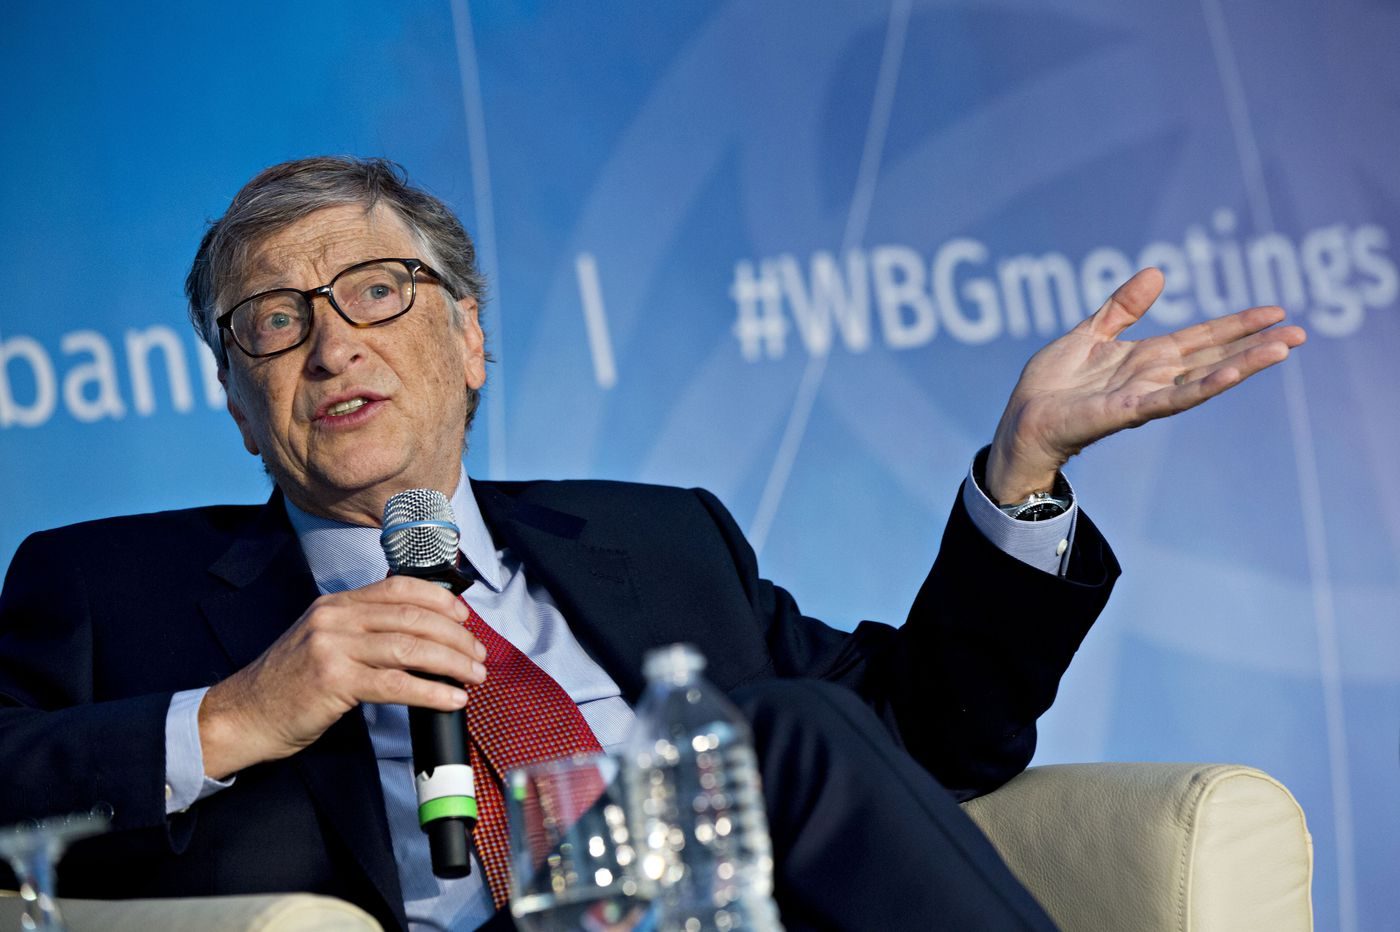 Bill Gates sells nuclear power as the only viable alternative energy source to slow climate change